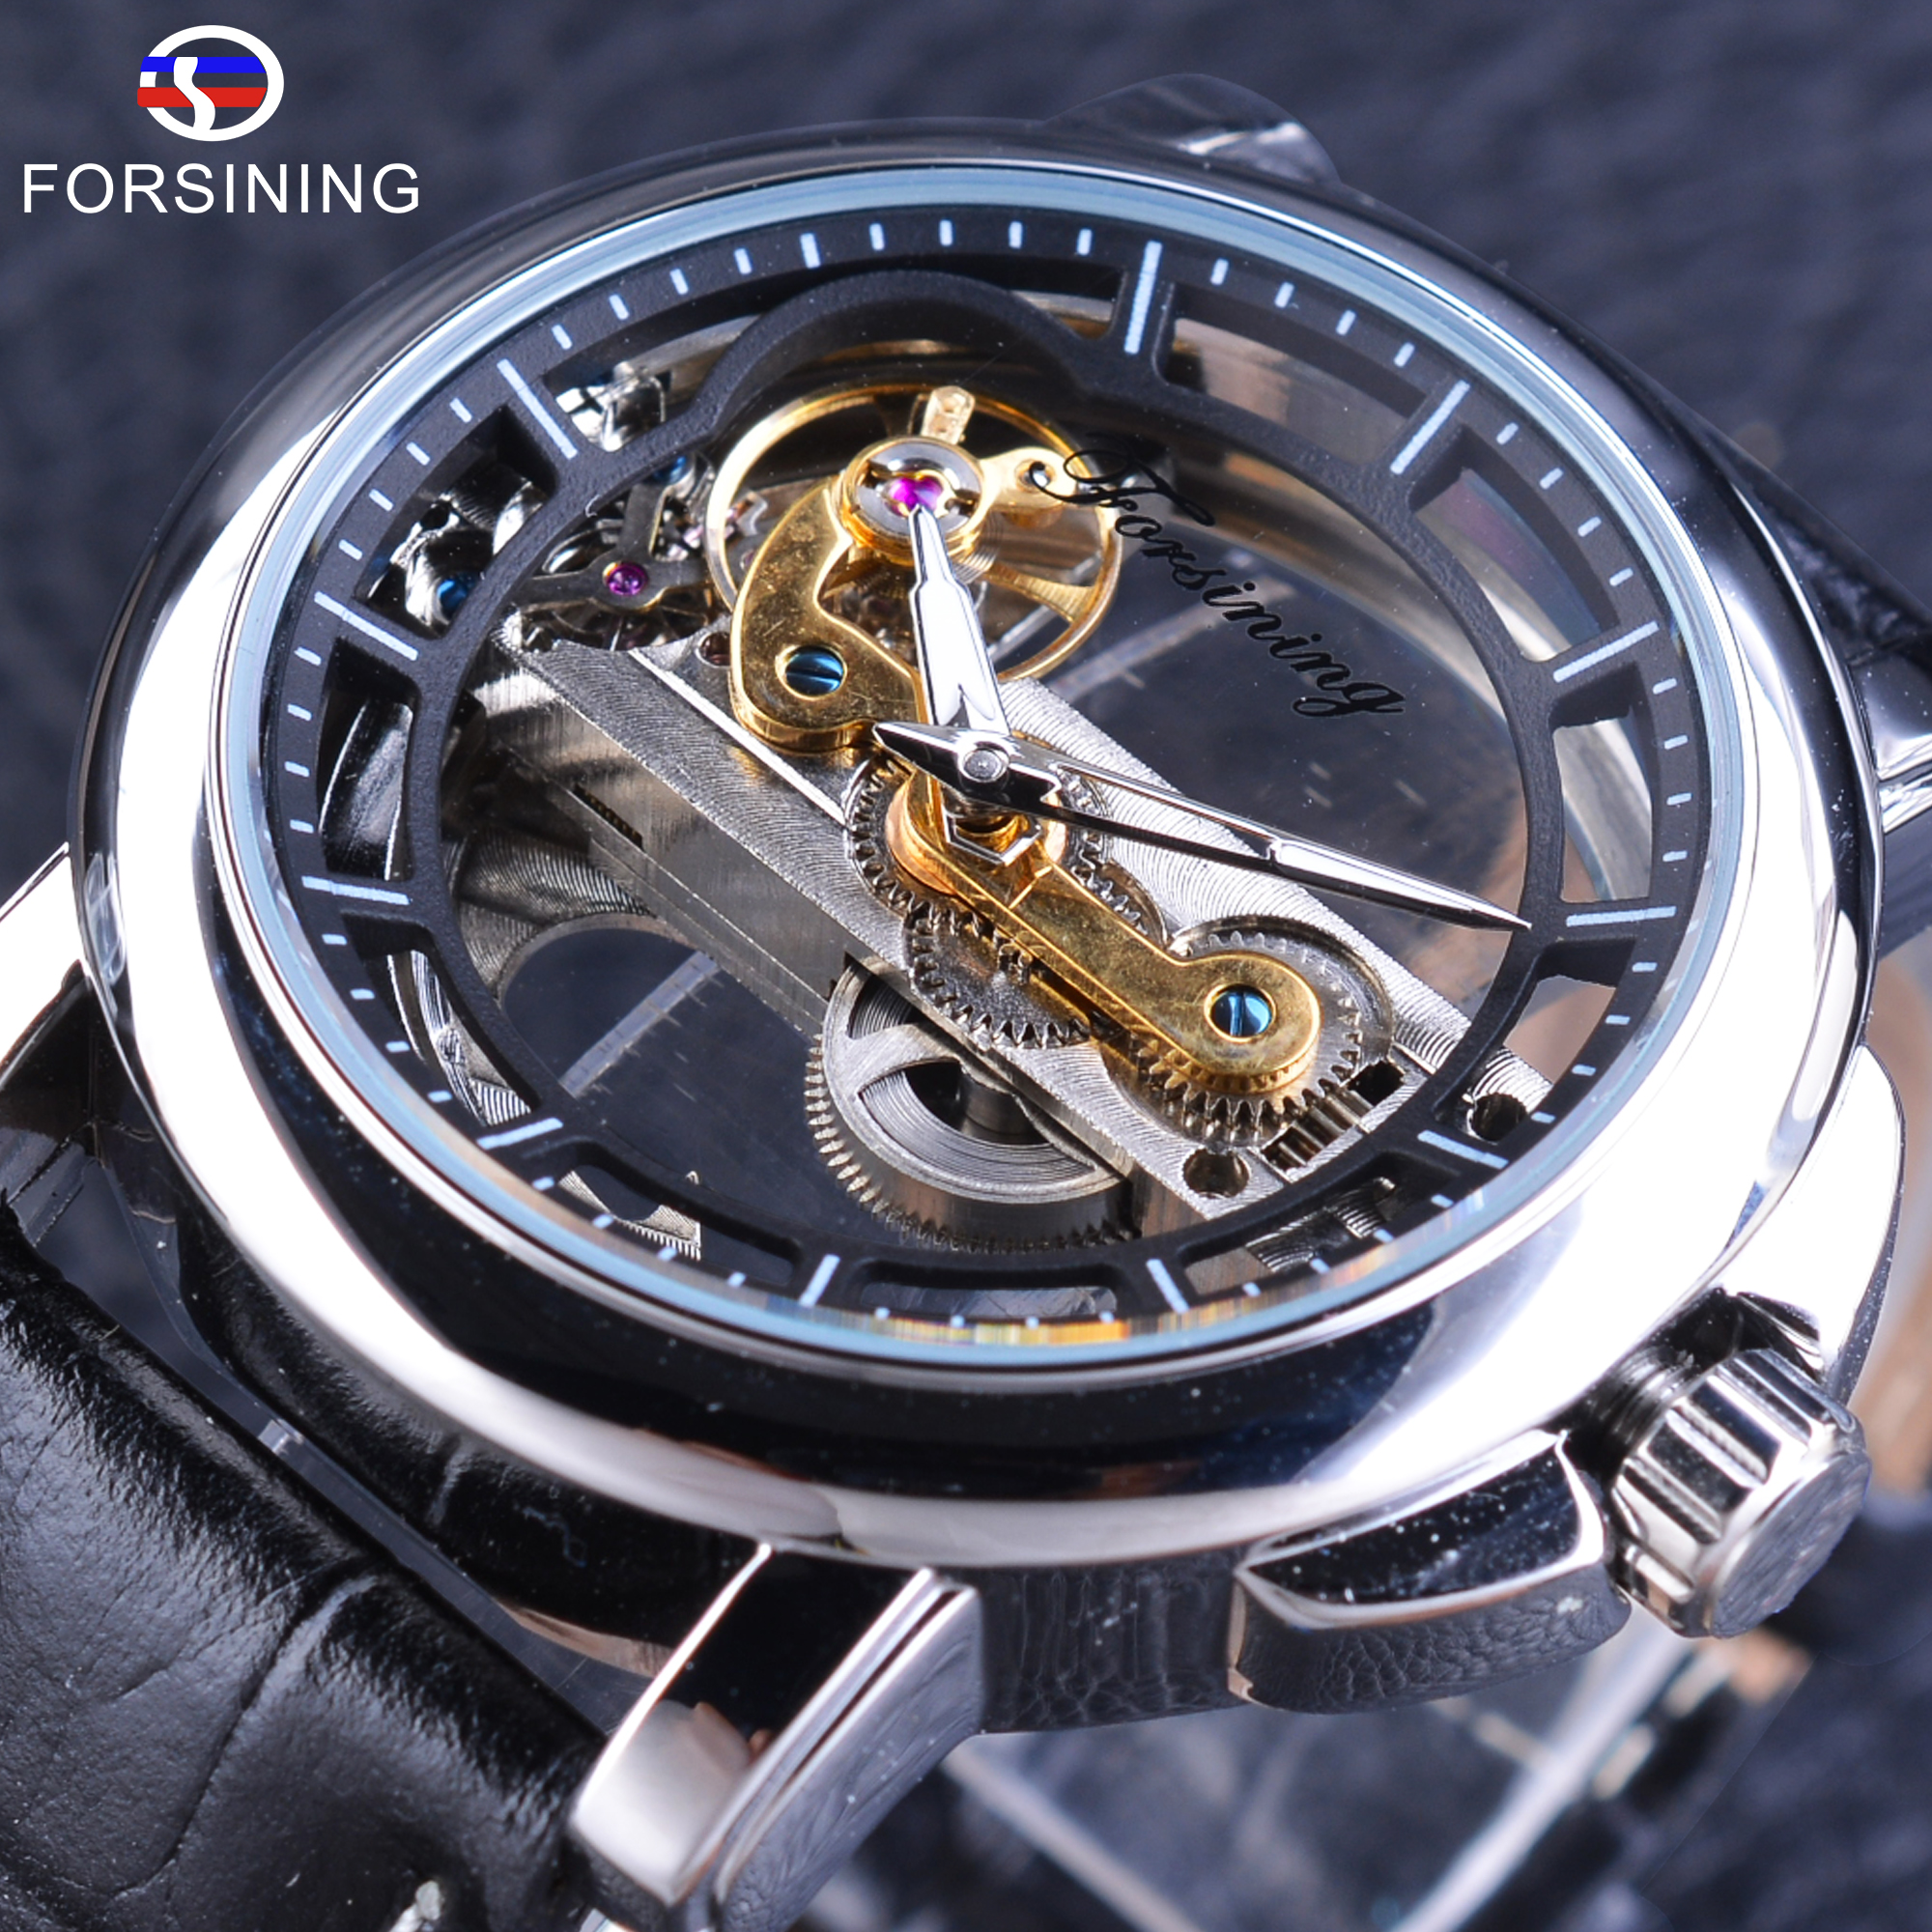 Forsining Men's Mechanical Watches with Automatic Winding Waterproof Clock Men Steampunk Watch Genuine Leather Sport Wrist Watch forsining golden stainless steel sport watch steampunk men watch luminous openwork mechanical watches folding clasp with safety